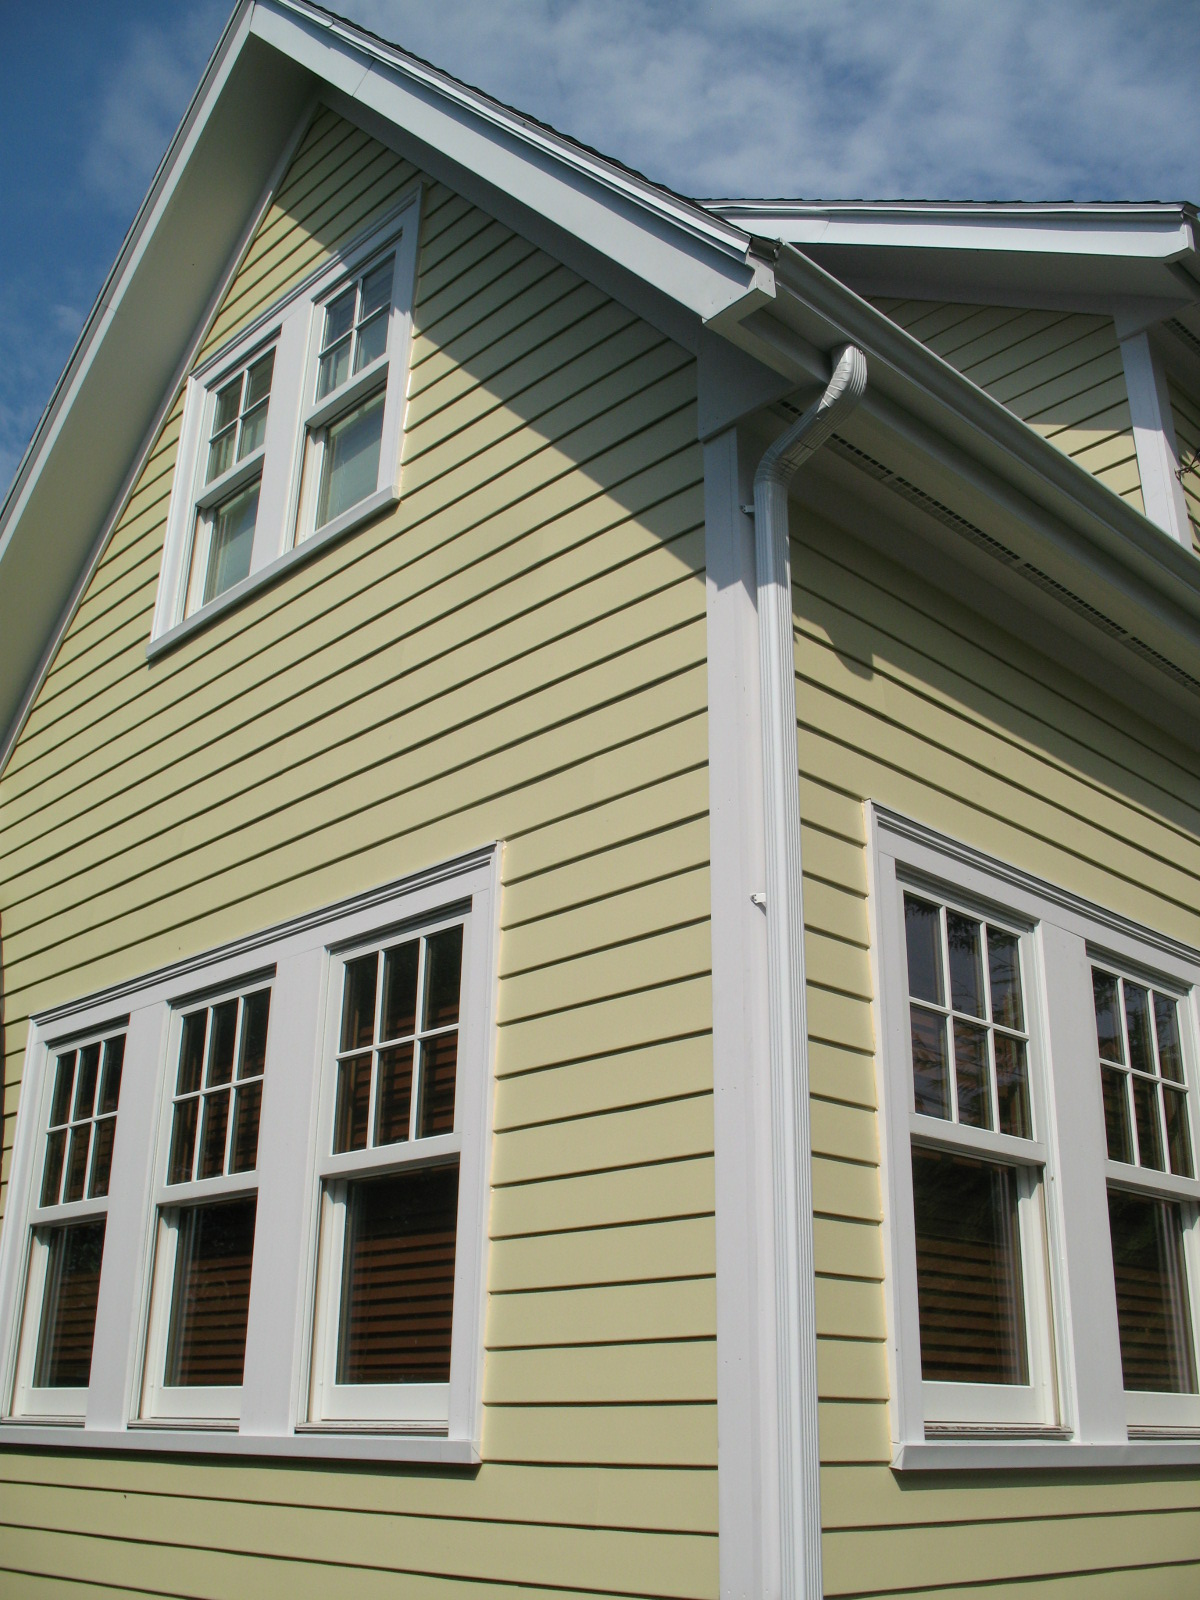 Siding job in arlington bgblog - Exterior house insulation under siding ...